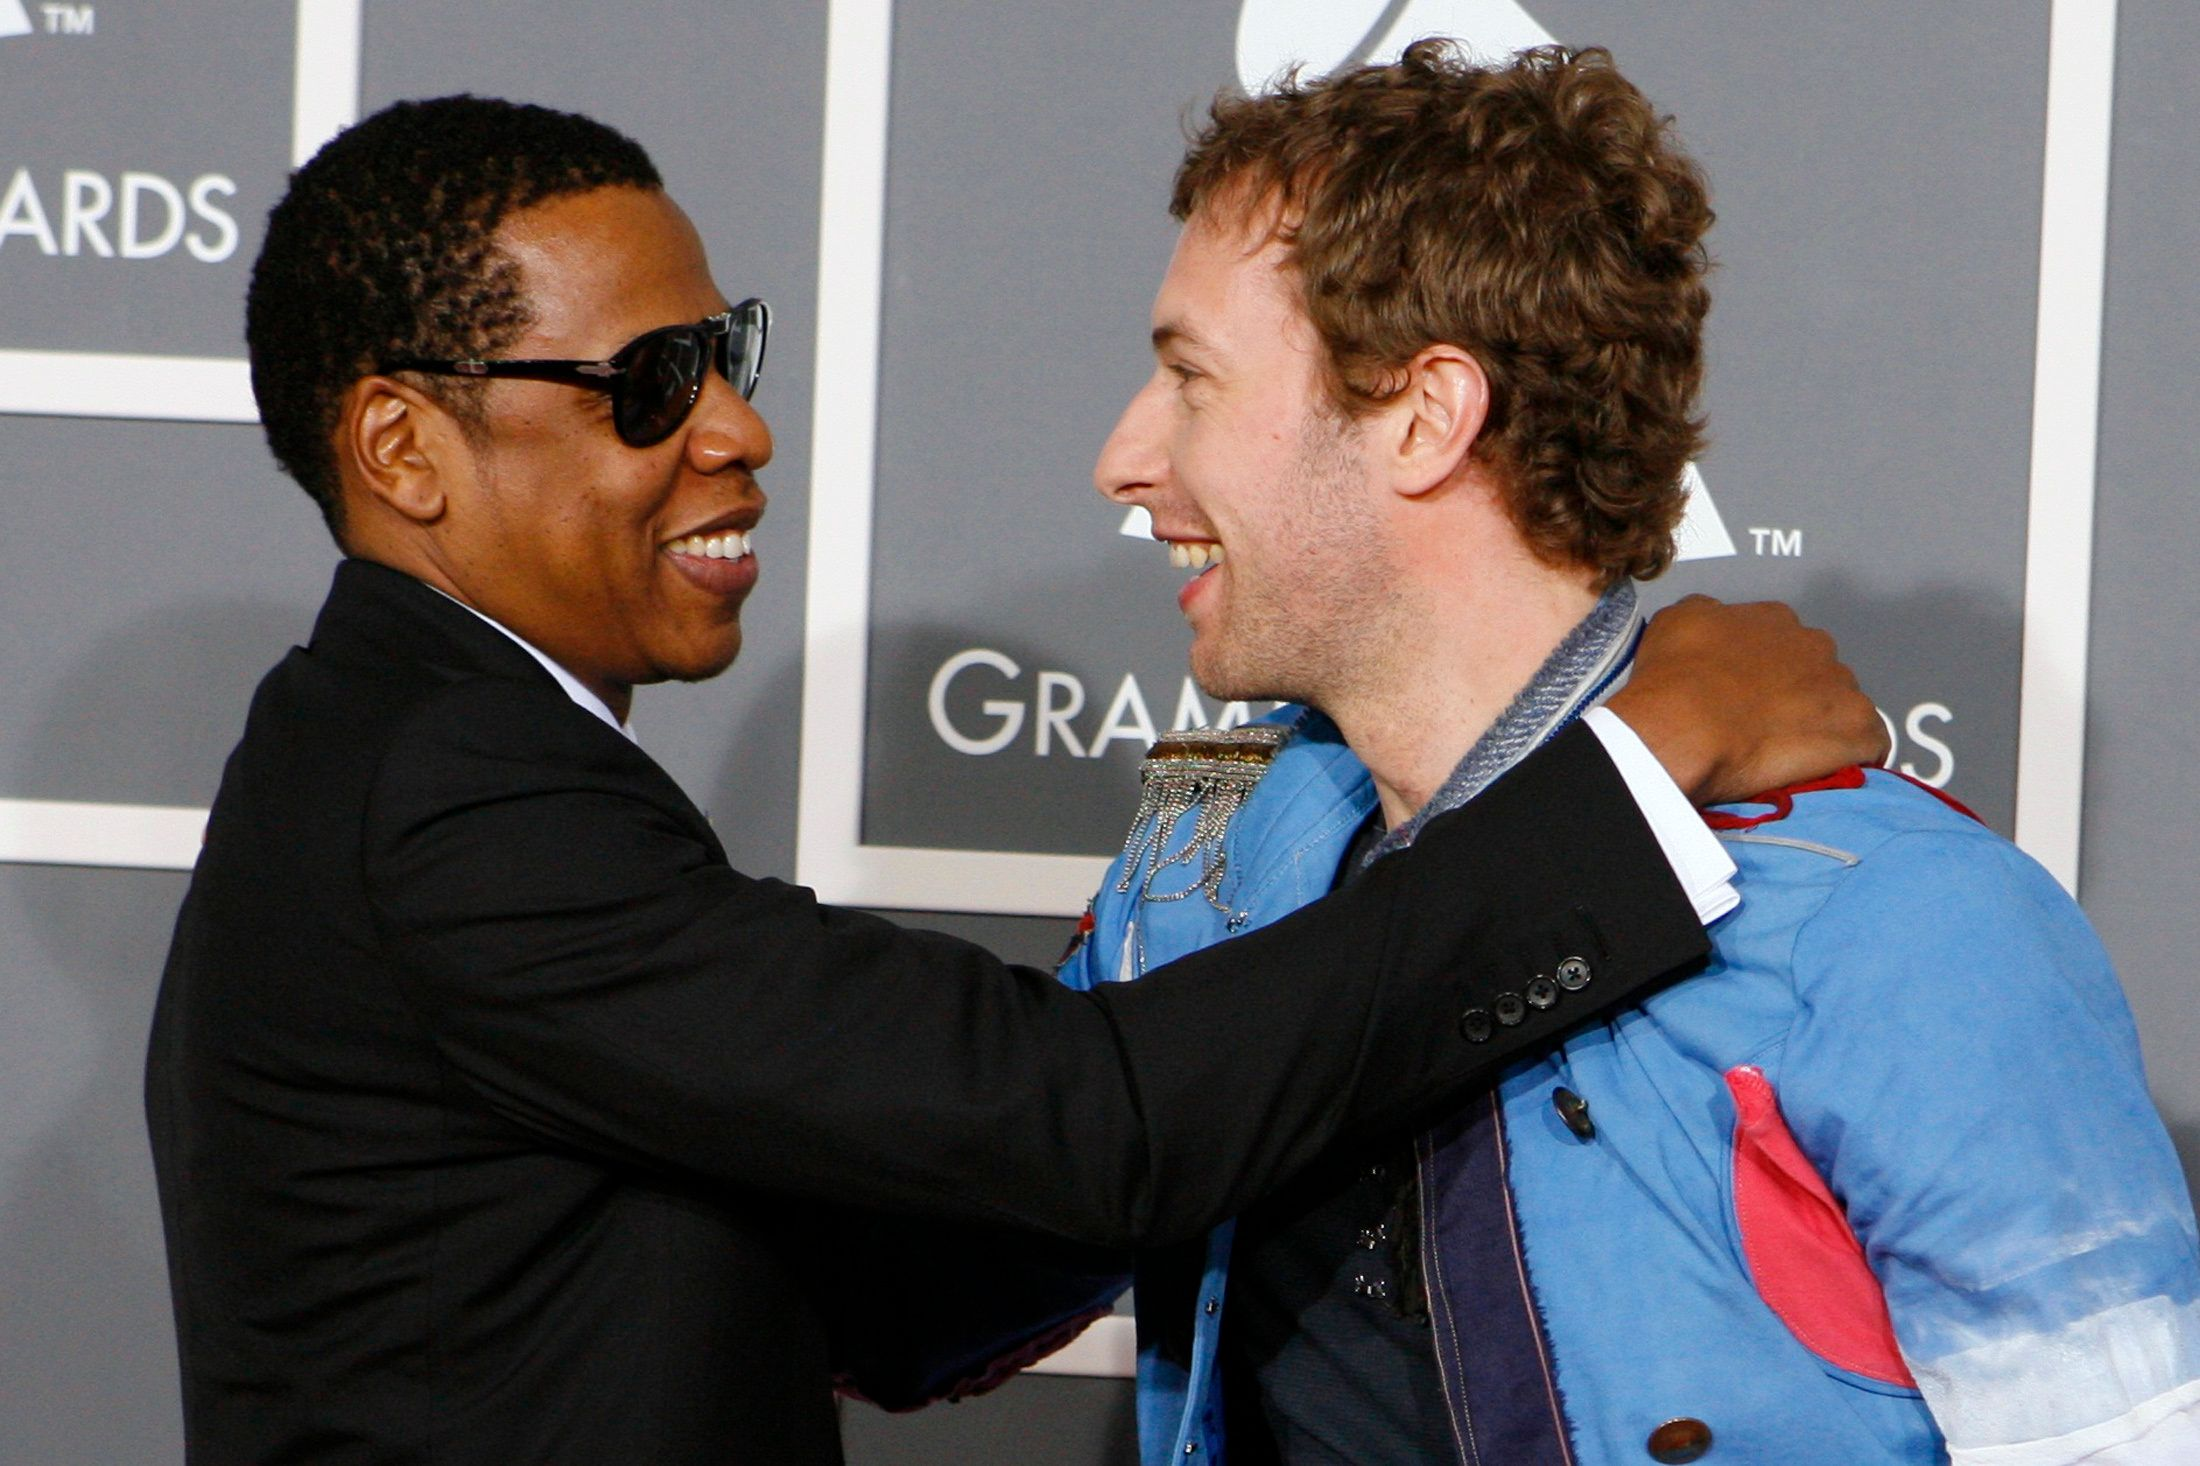 Jay-Z calls Chris Martin a 'genius' and a 'modern day Shakespeare'